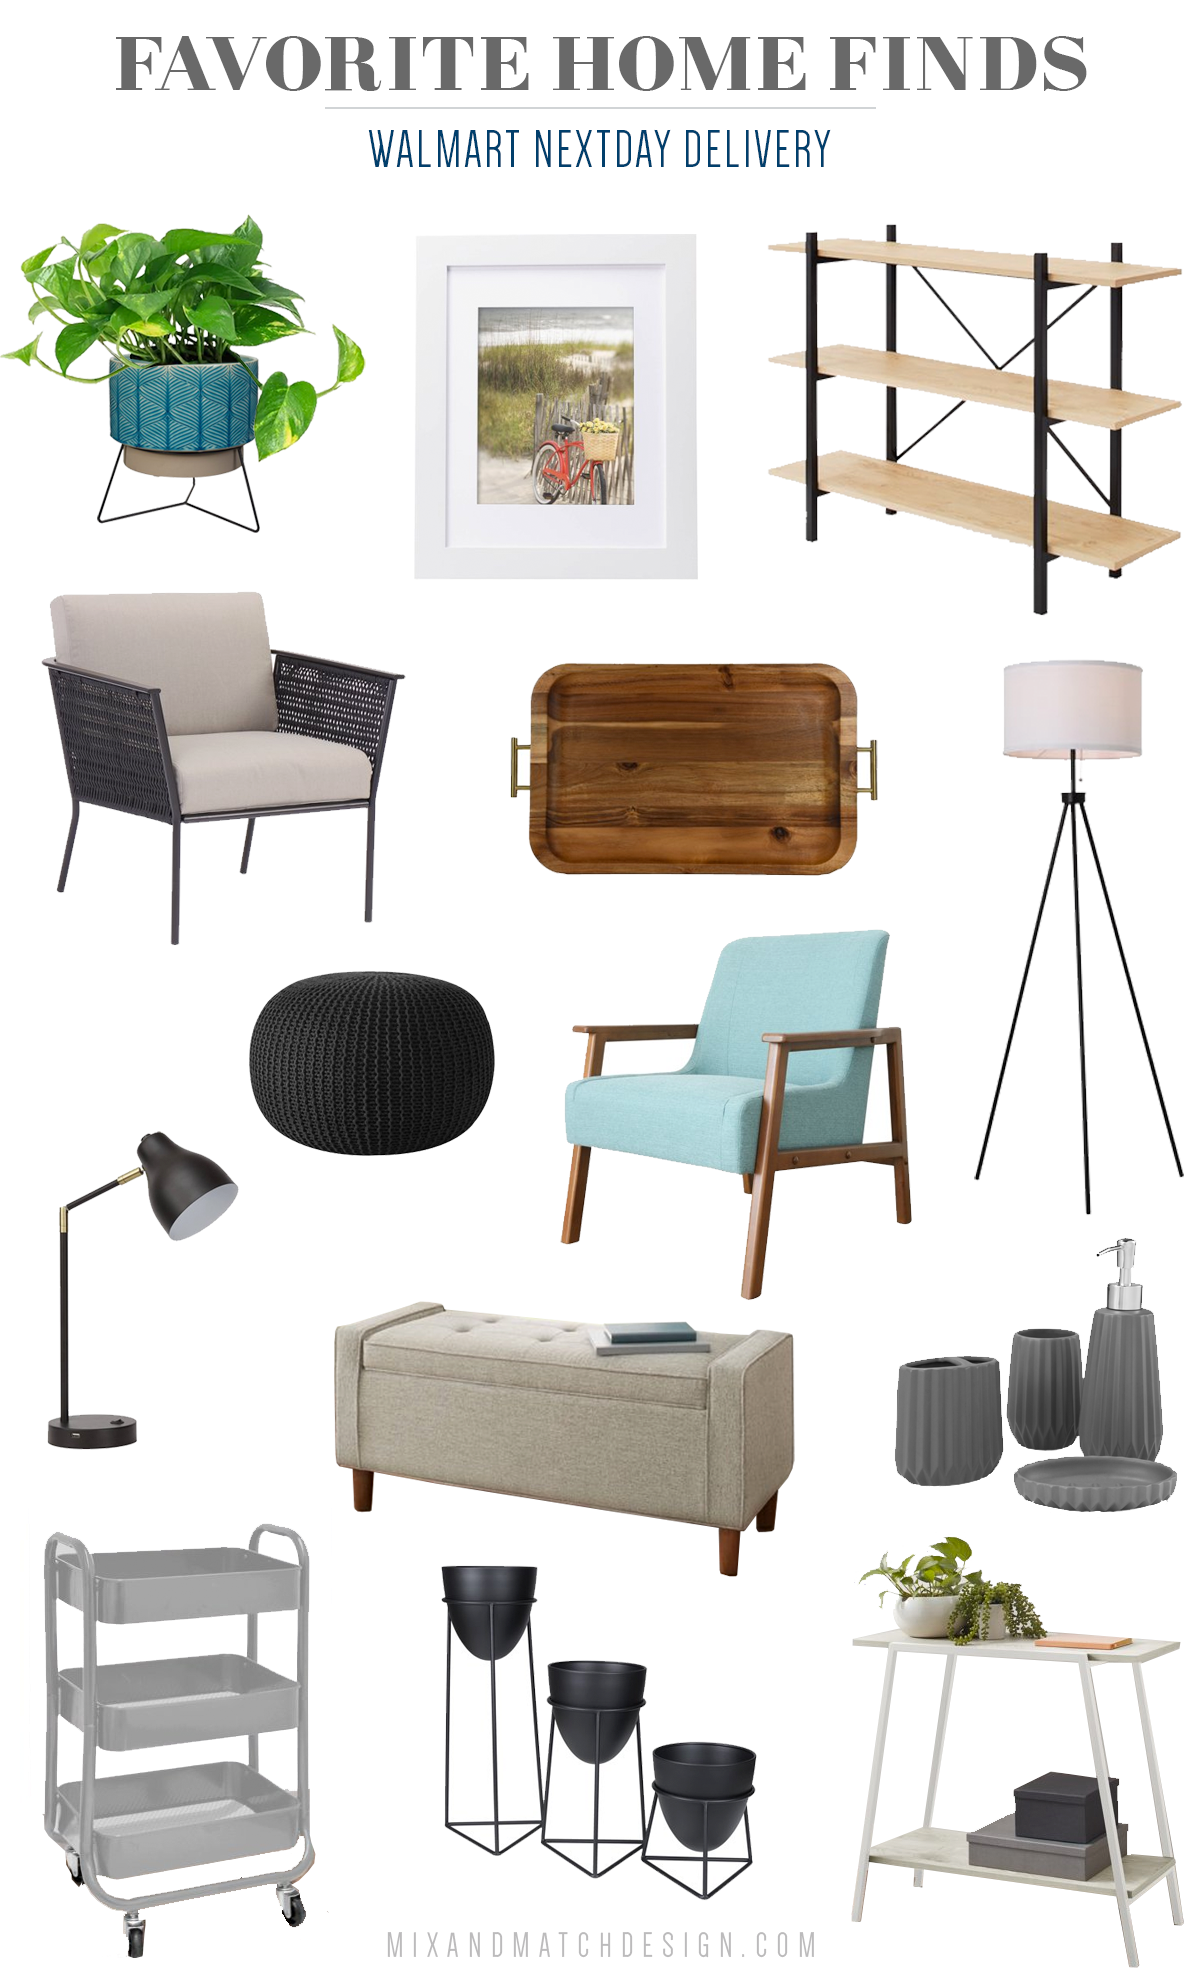 Saving time and money is important to me, so I was excited to hear about Walmart's new NextDay delivery service! It's fast and FREE when you spend $35, and everything arrives the next day in one box. Learn more in my blog post. All of these awesome home decor and furniture finds are eligible!